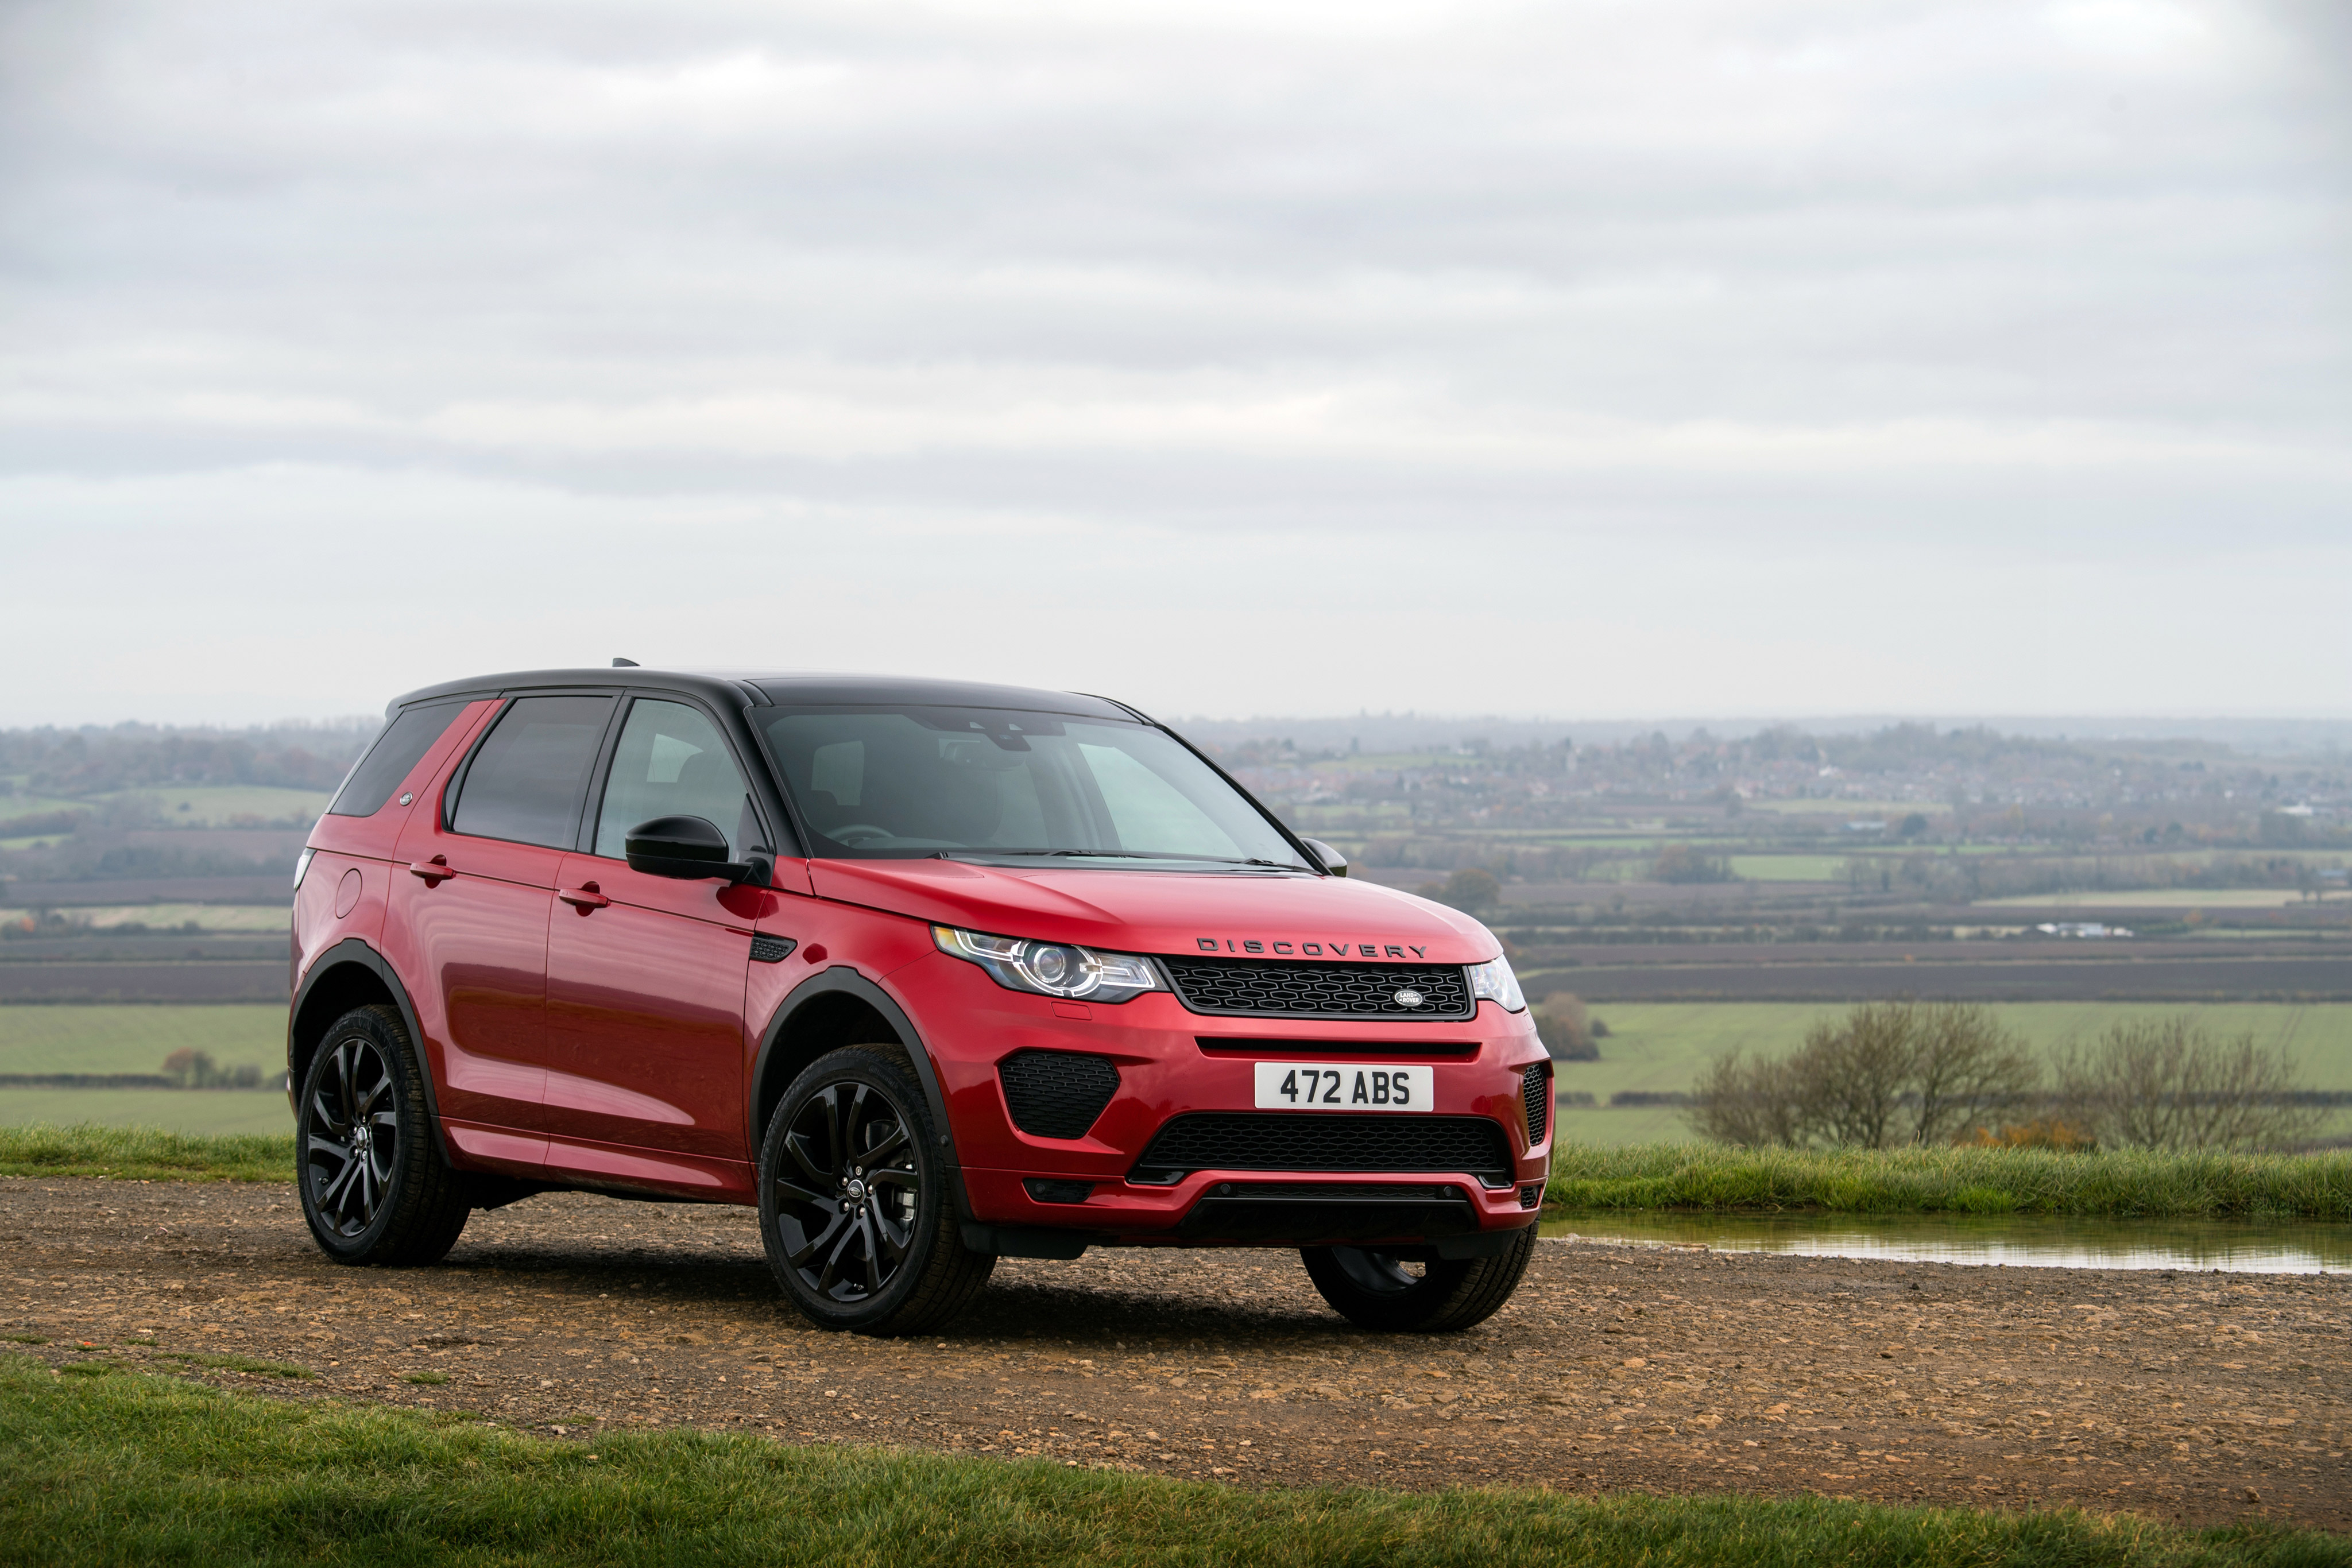 Range Rover Sport Iphone Wallpaper: 640x1136 Land Rover Discovery Sport HSE Si4 Dynamic Lux